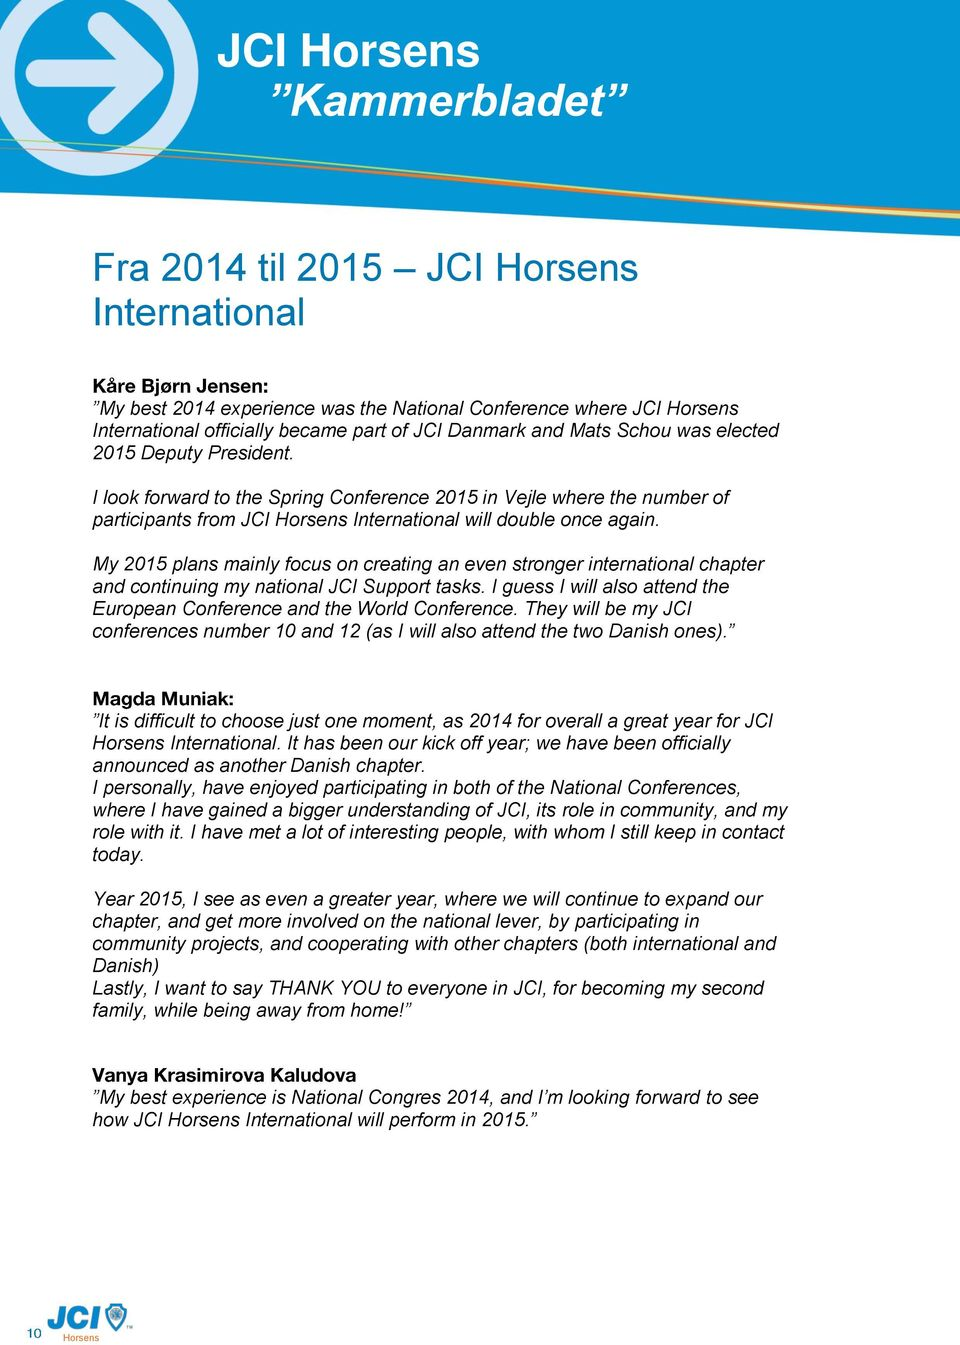 My 2015 plans mainly focus on creating an even stronger international chapter and continuing my national JCI Support tasks. I guess I will also attend the European Conference and the World Conference.